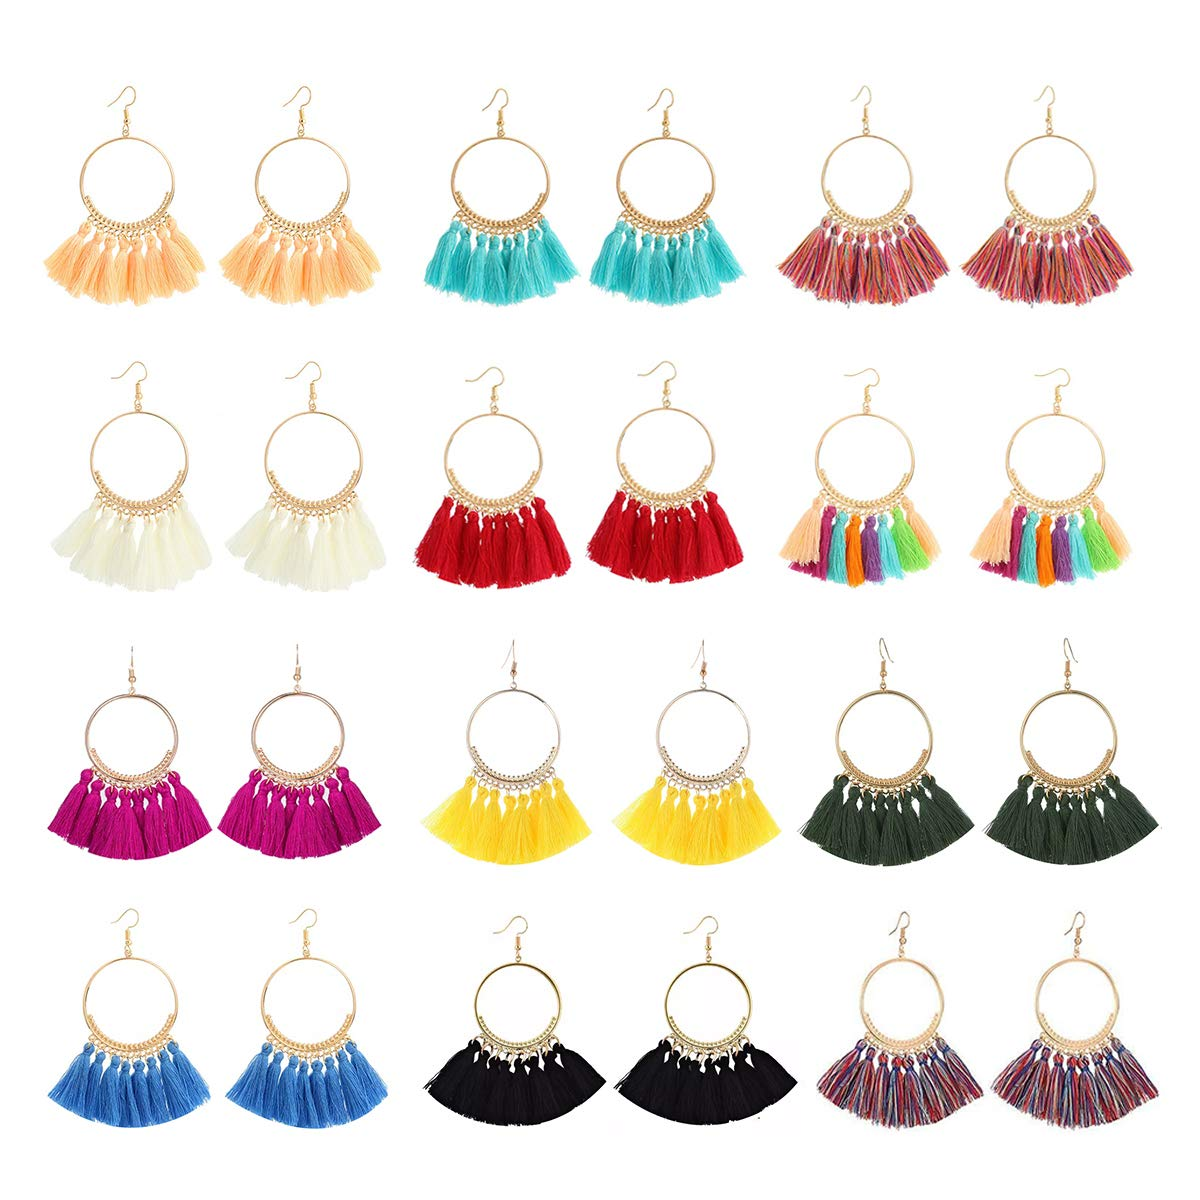 LANTAI 12 Pairs Bohemian Hoop Tassel Earrings Set-Colorful Fan Tassel Statement Earrings for Women Girls Gifts Jewelry by LANTAI